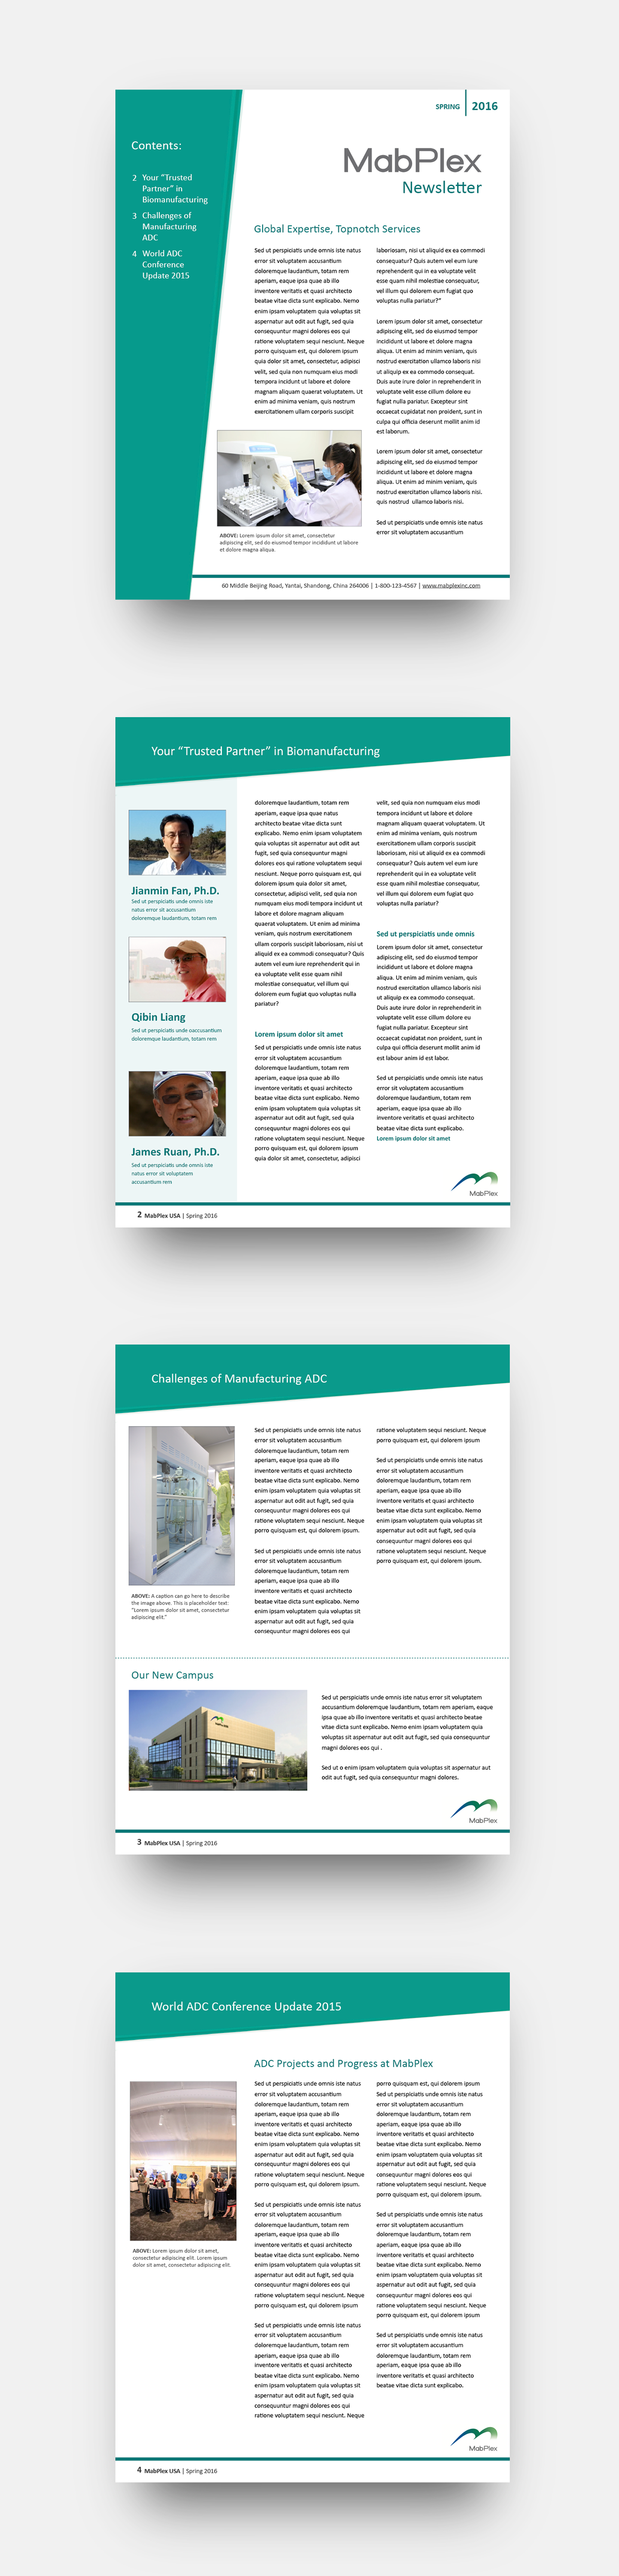 6e6c3b35413289.56f5c3165a4f8 Quarterly Business Newsletter Template on